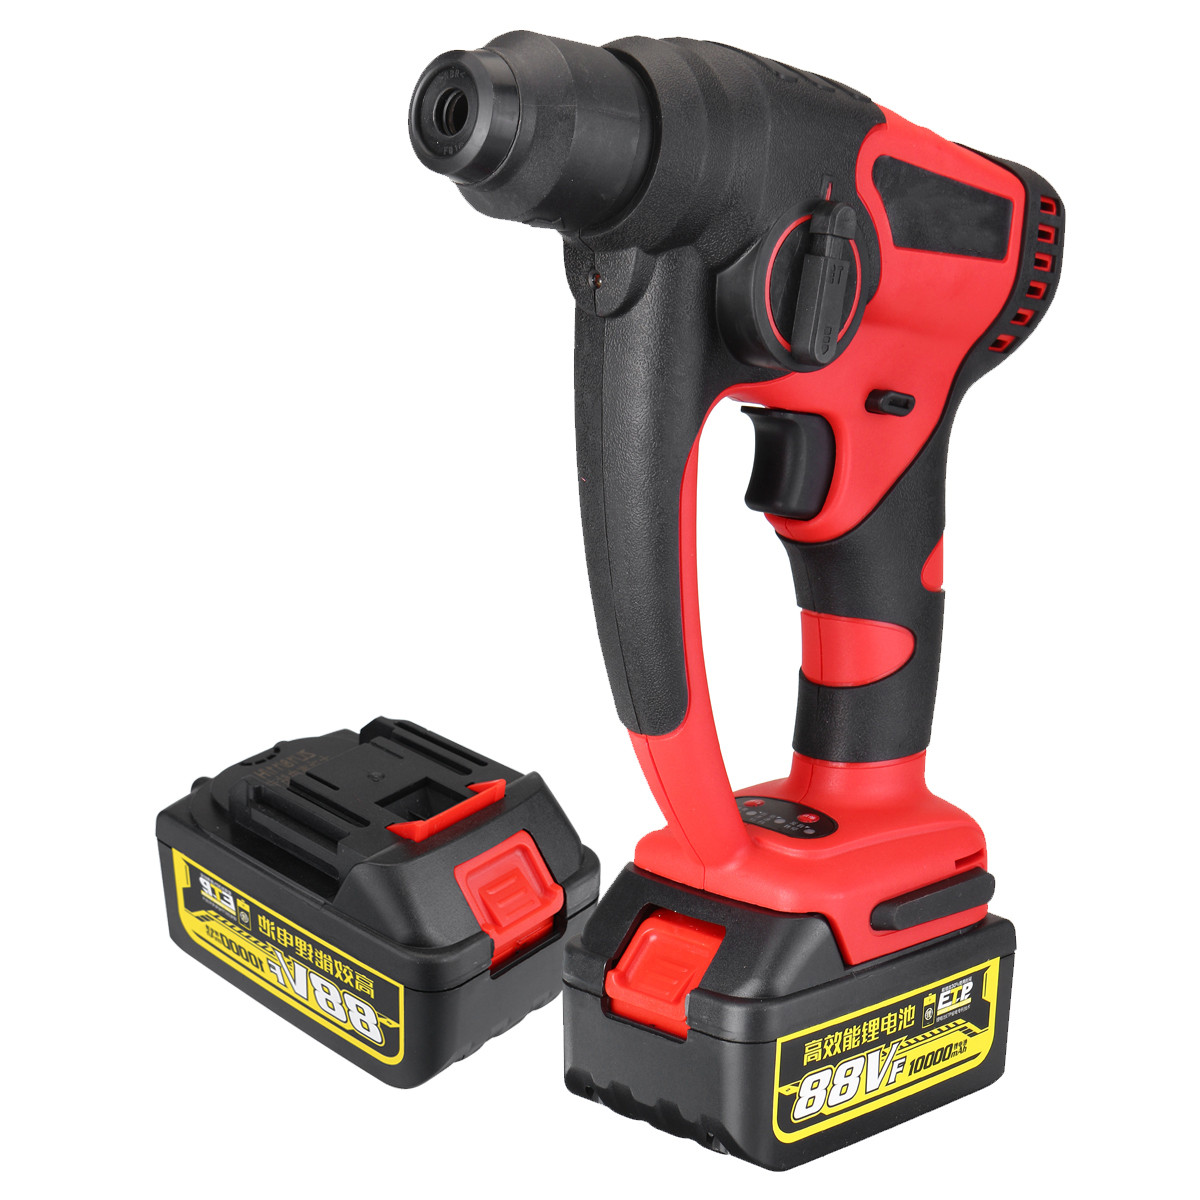 88v 800w 10000mAh Electric Hammer Brushless Cordless Lithium Ion Hammer Drill with 1 Battery Power Tools Power Impact Drill Electric Hammers     - title=